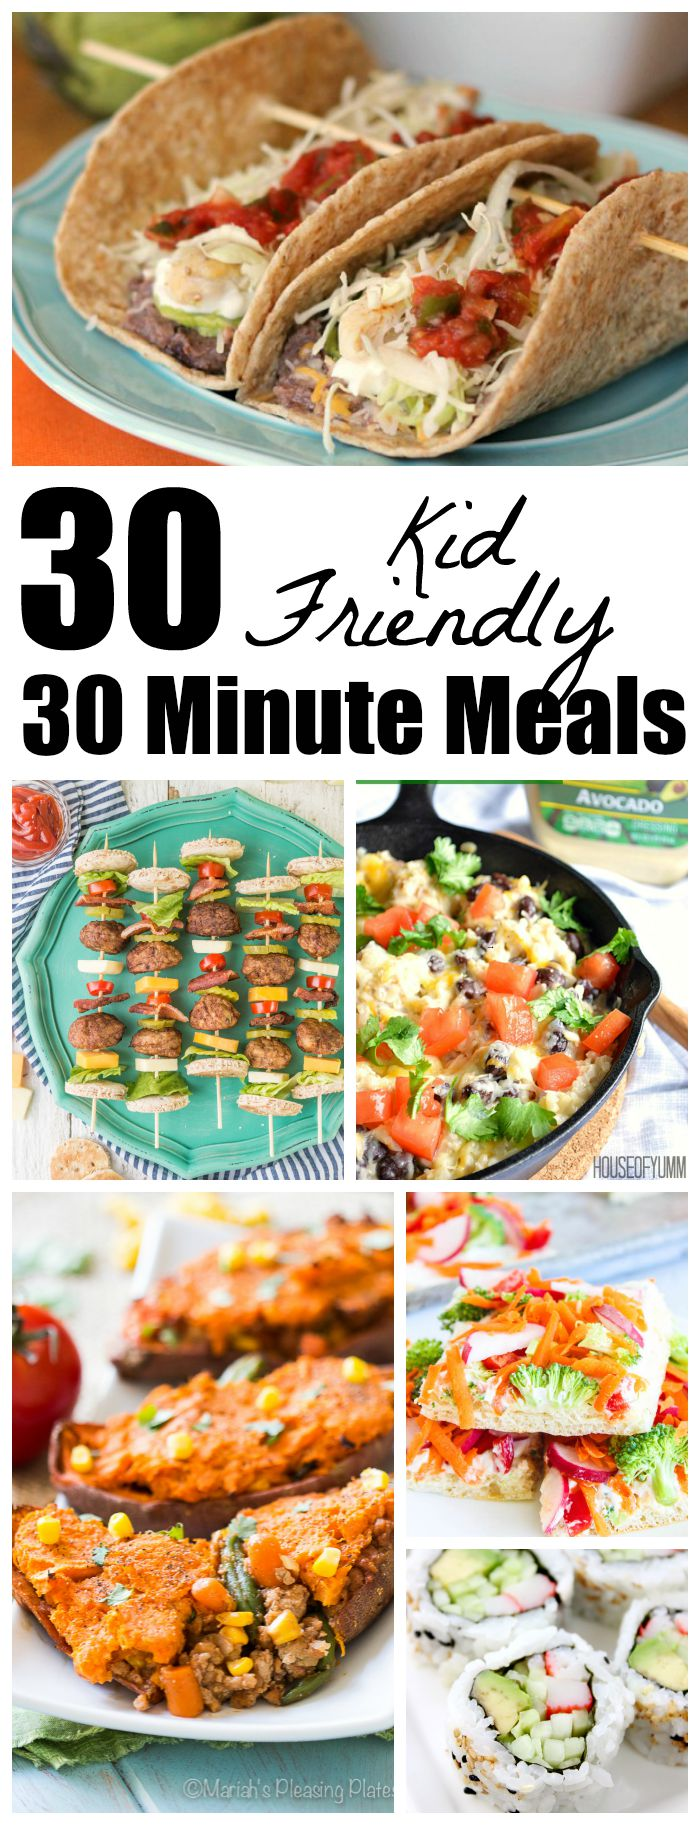 30 Kid Friendly 30 Minute Meals